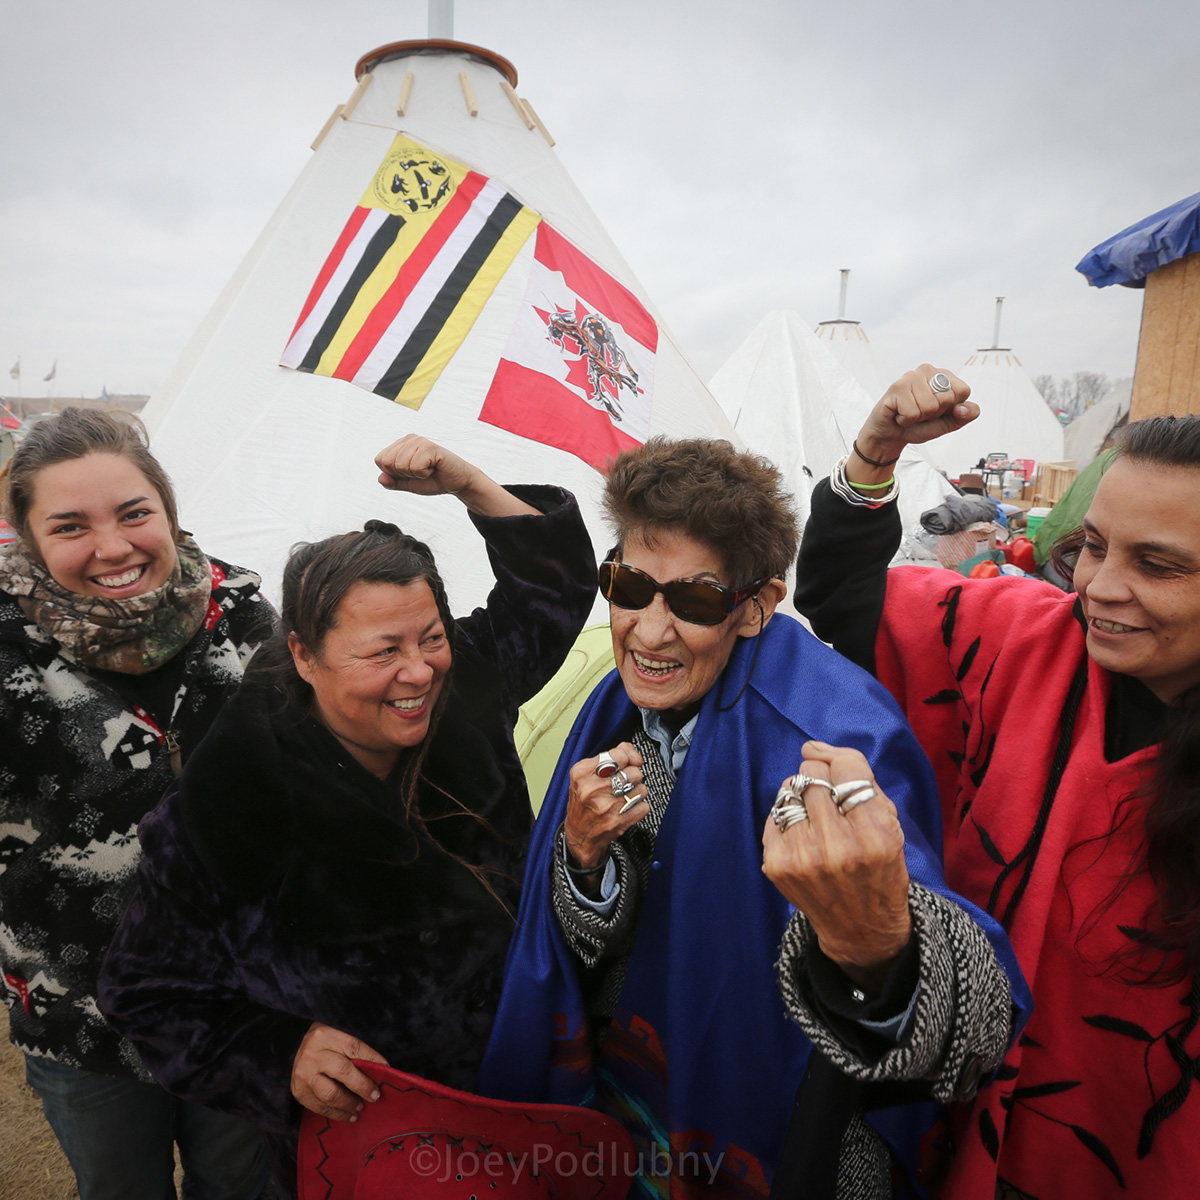 At the Oceti Sakowin Camp in 2016, Taylor Peterson, Katherine Morrisseau, Nancy Scanie, and Fawn Youngbear-Tibbetts (left to right). Clan Grandmother Nancy Scanie from Cold Lake Dene First Nation in Alberta Canada represented the Athabasca Keepers of the Water.